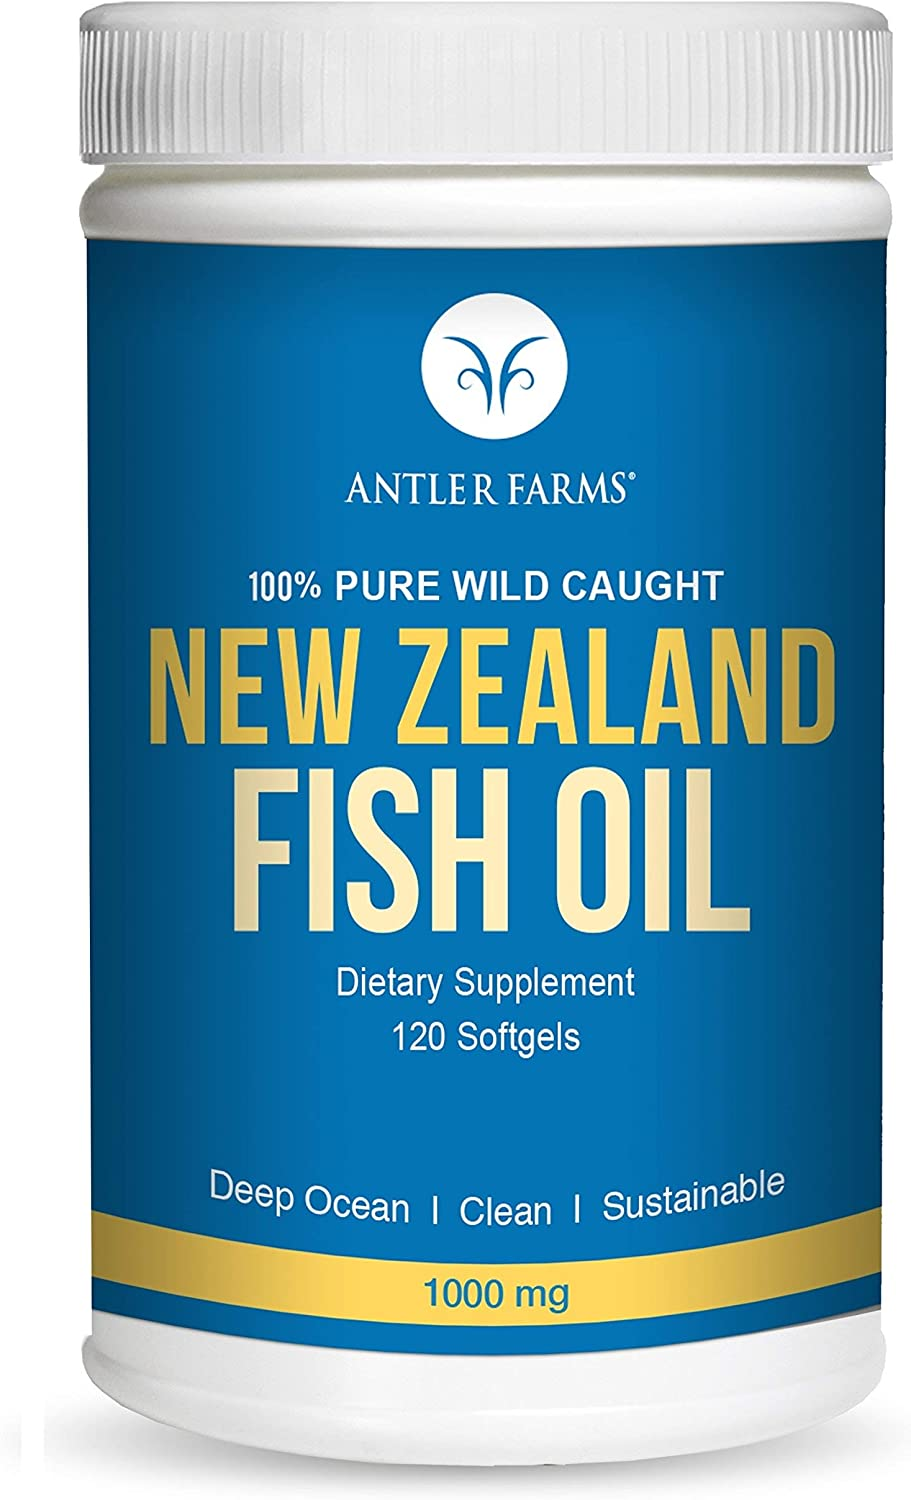 Antler Farms - 100% Pure Wild Caught New Zealand Fish Oil from Deep Ocean, Cold Water Fish, 120 Softgels - Clean, Fresh Omega-3 EPA + DHA Supplement, Keto Friendly, Super Clean